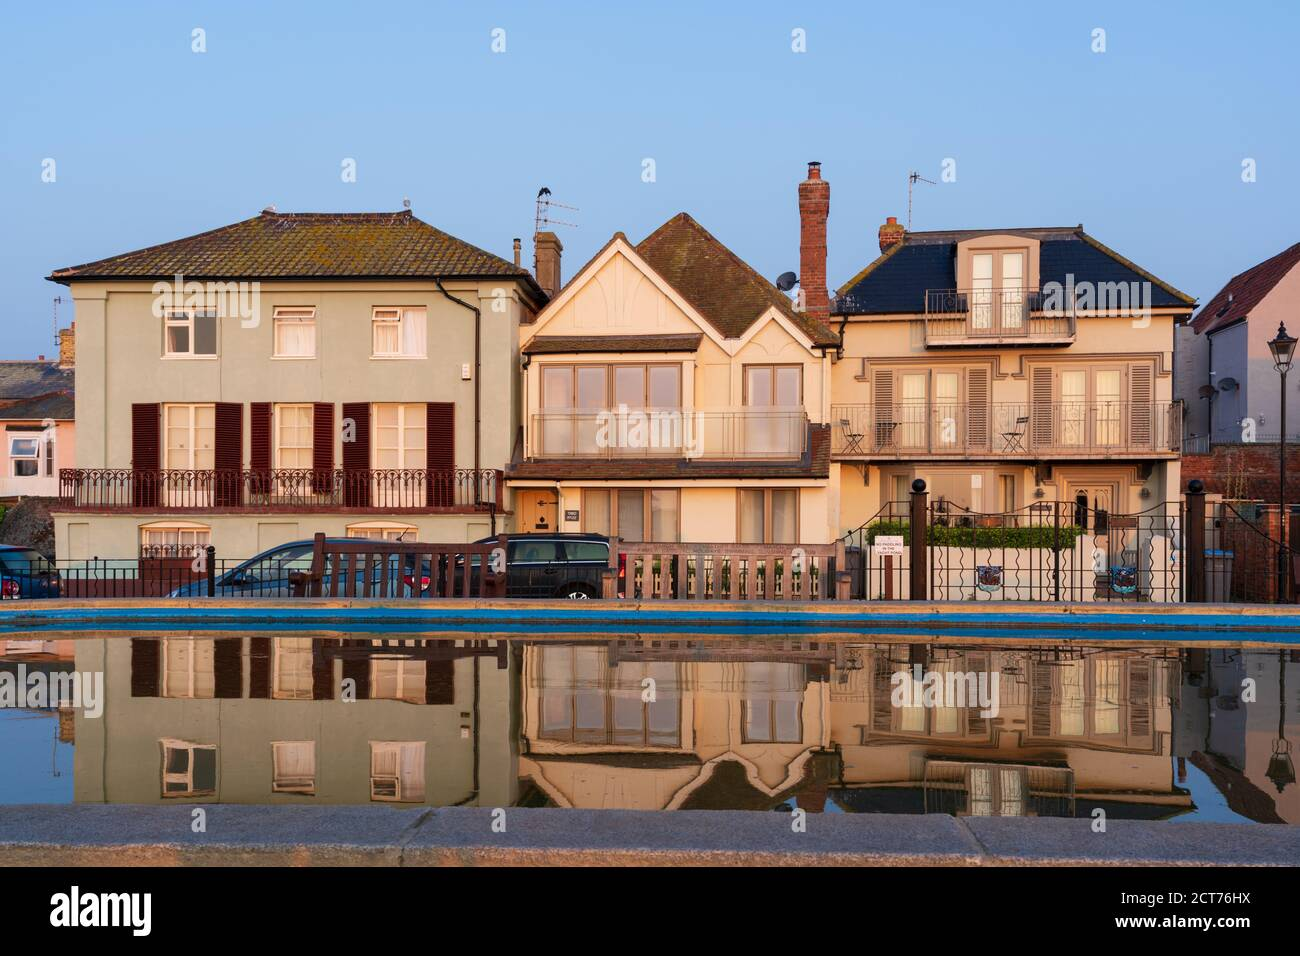 Aldeburgh, Suffolk, UK. September 2020. View of buildings at the boating pond in the early morning. Stock Photo